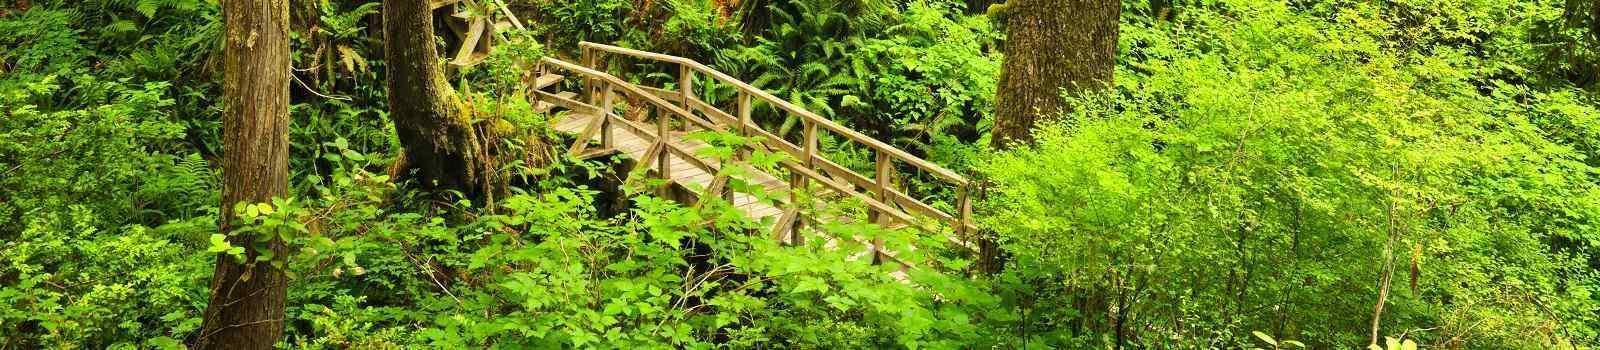 CAD-SACACOMIE Kanada Vancouver Island Wooden path through temperate rain forest  Pacific Rim National Park